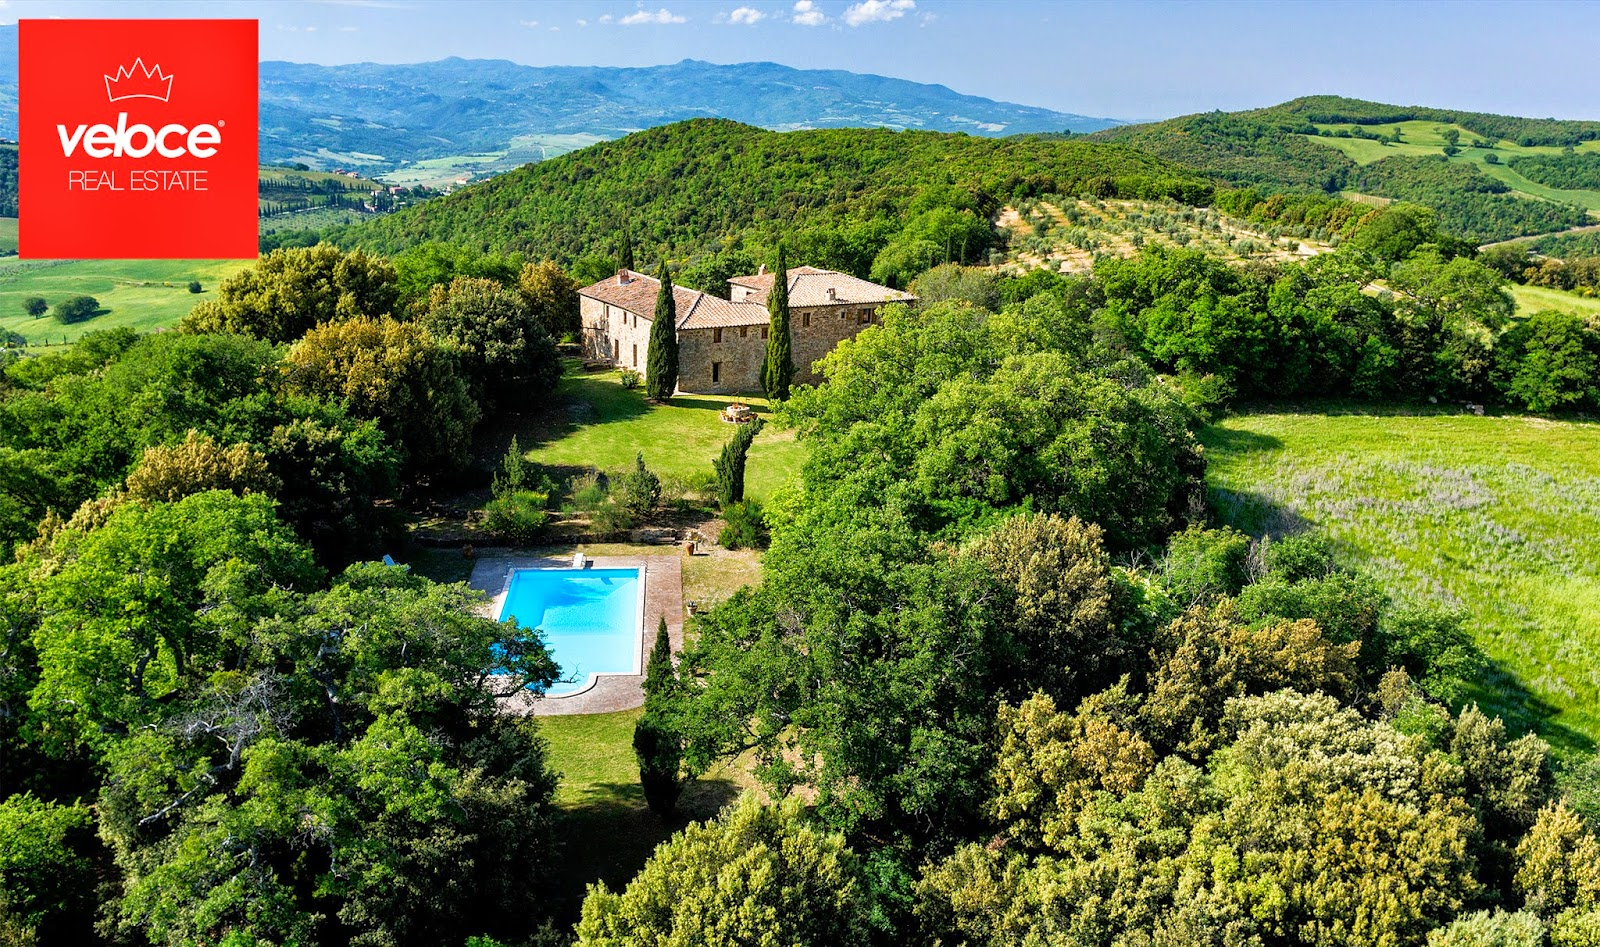 villa for rent in tuscany